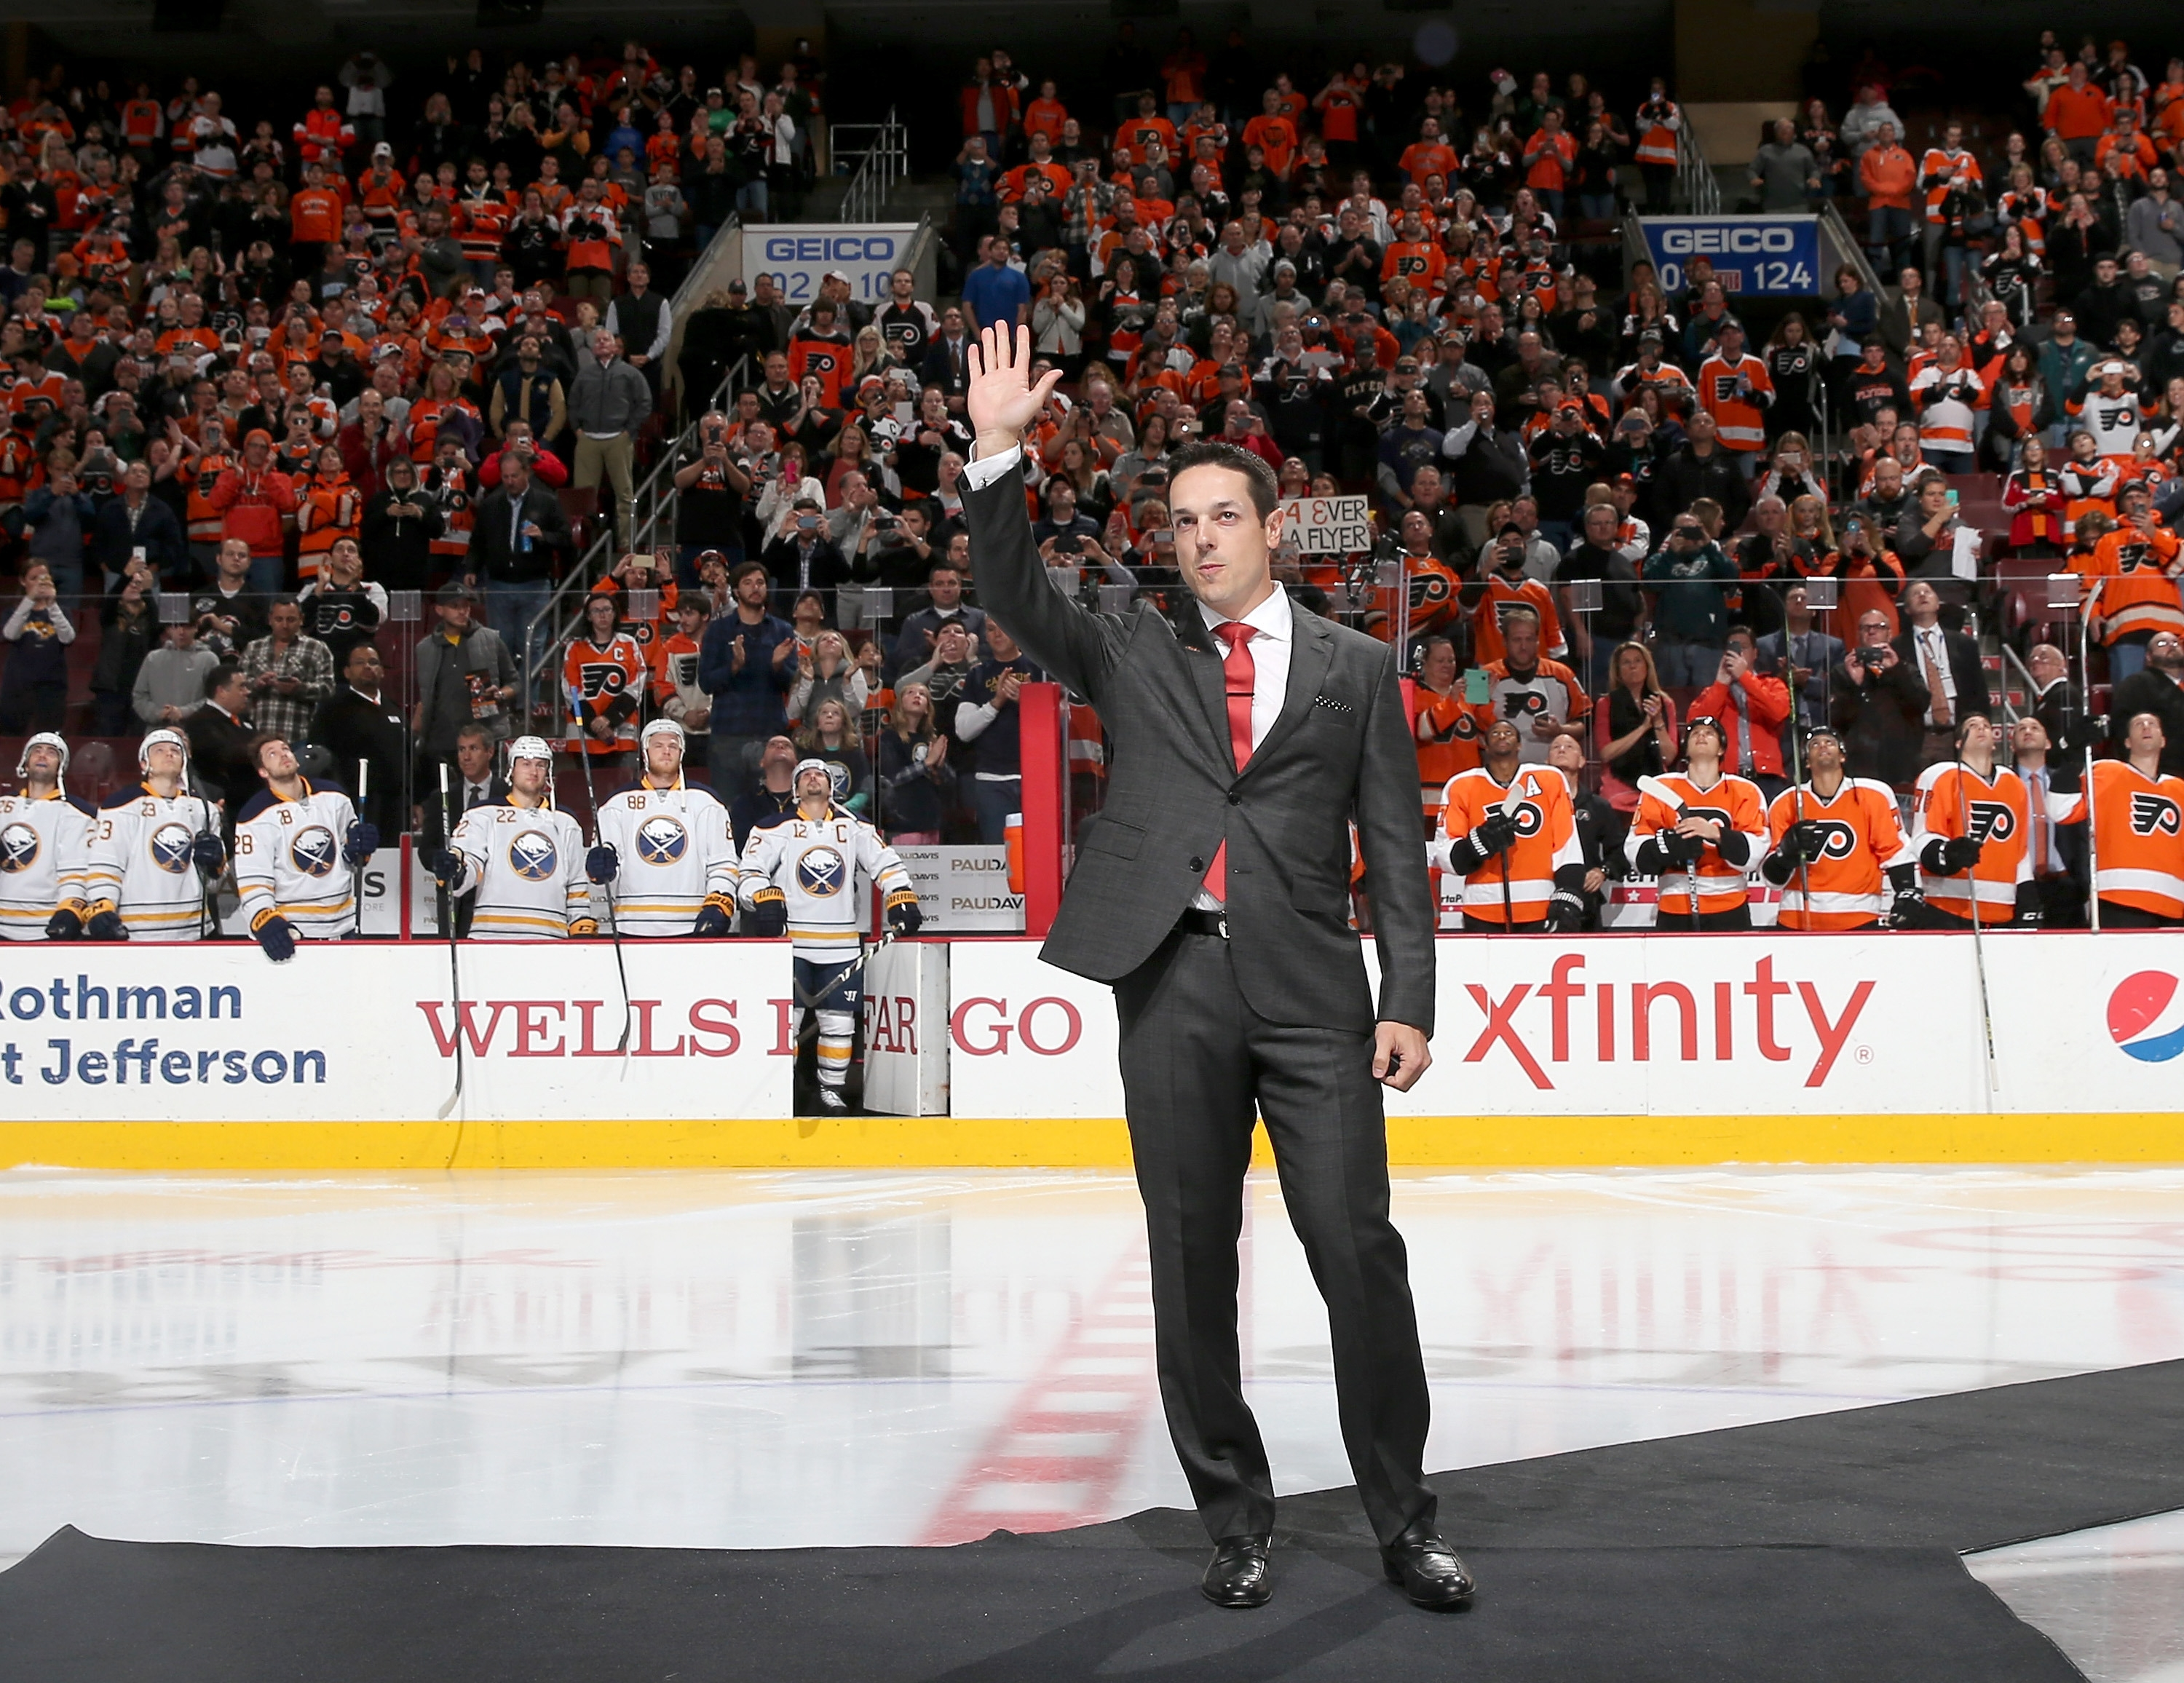 Former Philadelphia Flyer Danny Briere salutes the fans as he is honored before the game against the Buffalo Sabres Tuesday at the Wells Fargo Center in Philadelphia, Pa.